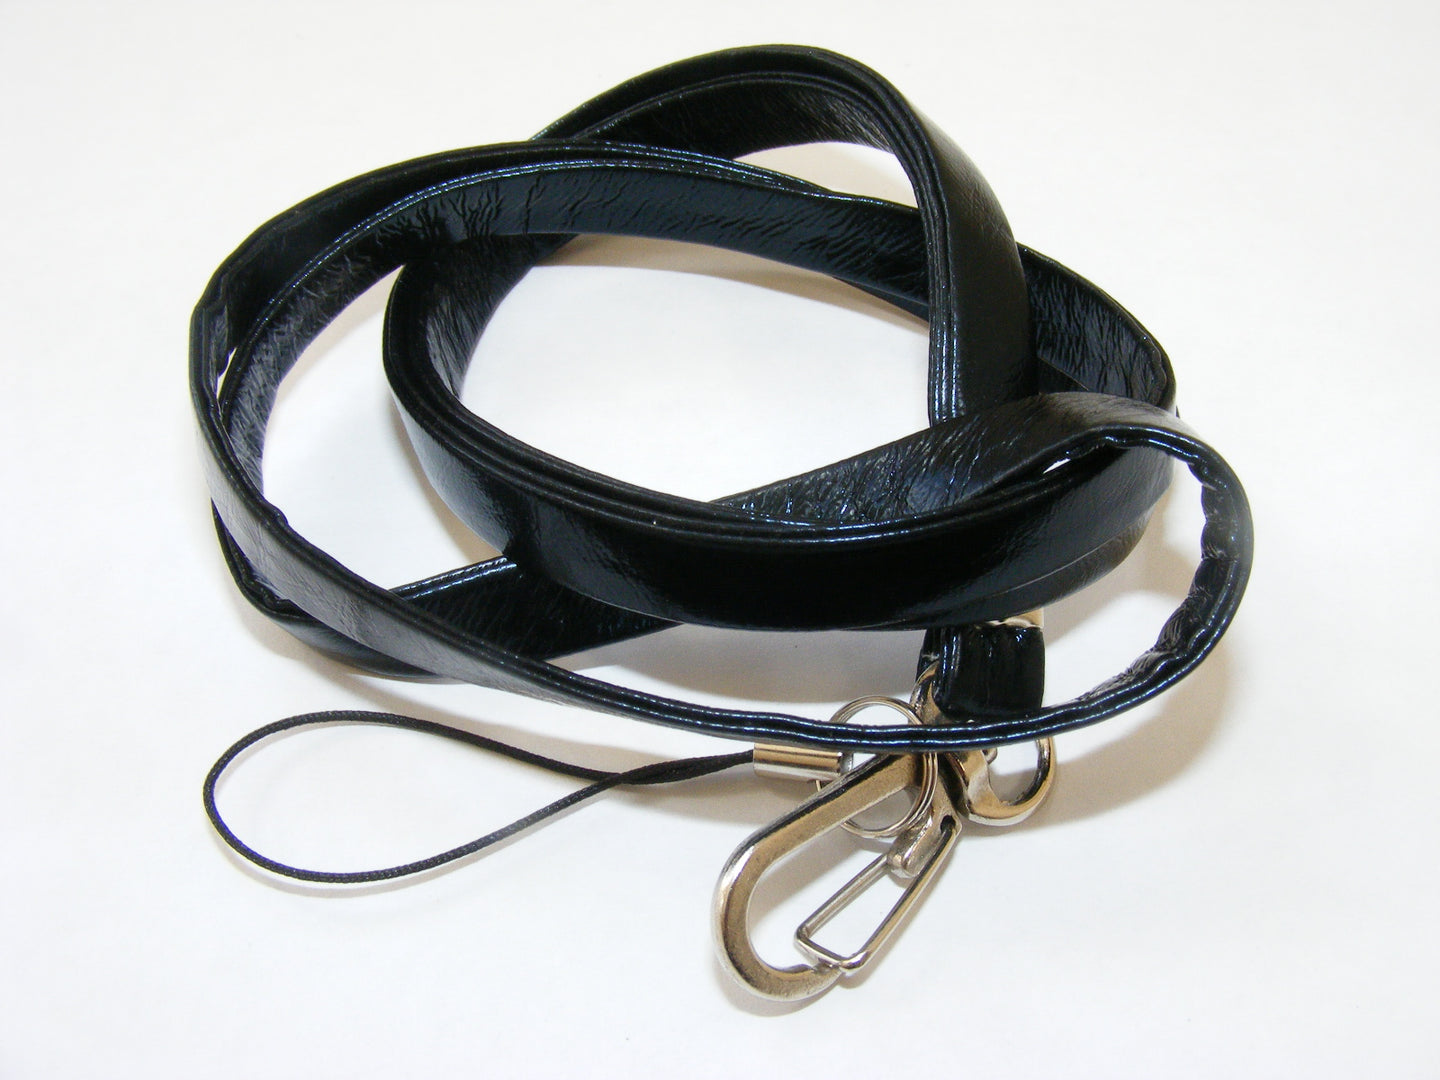 80062 BLACK LEATHERETTE LANYARD-10